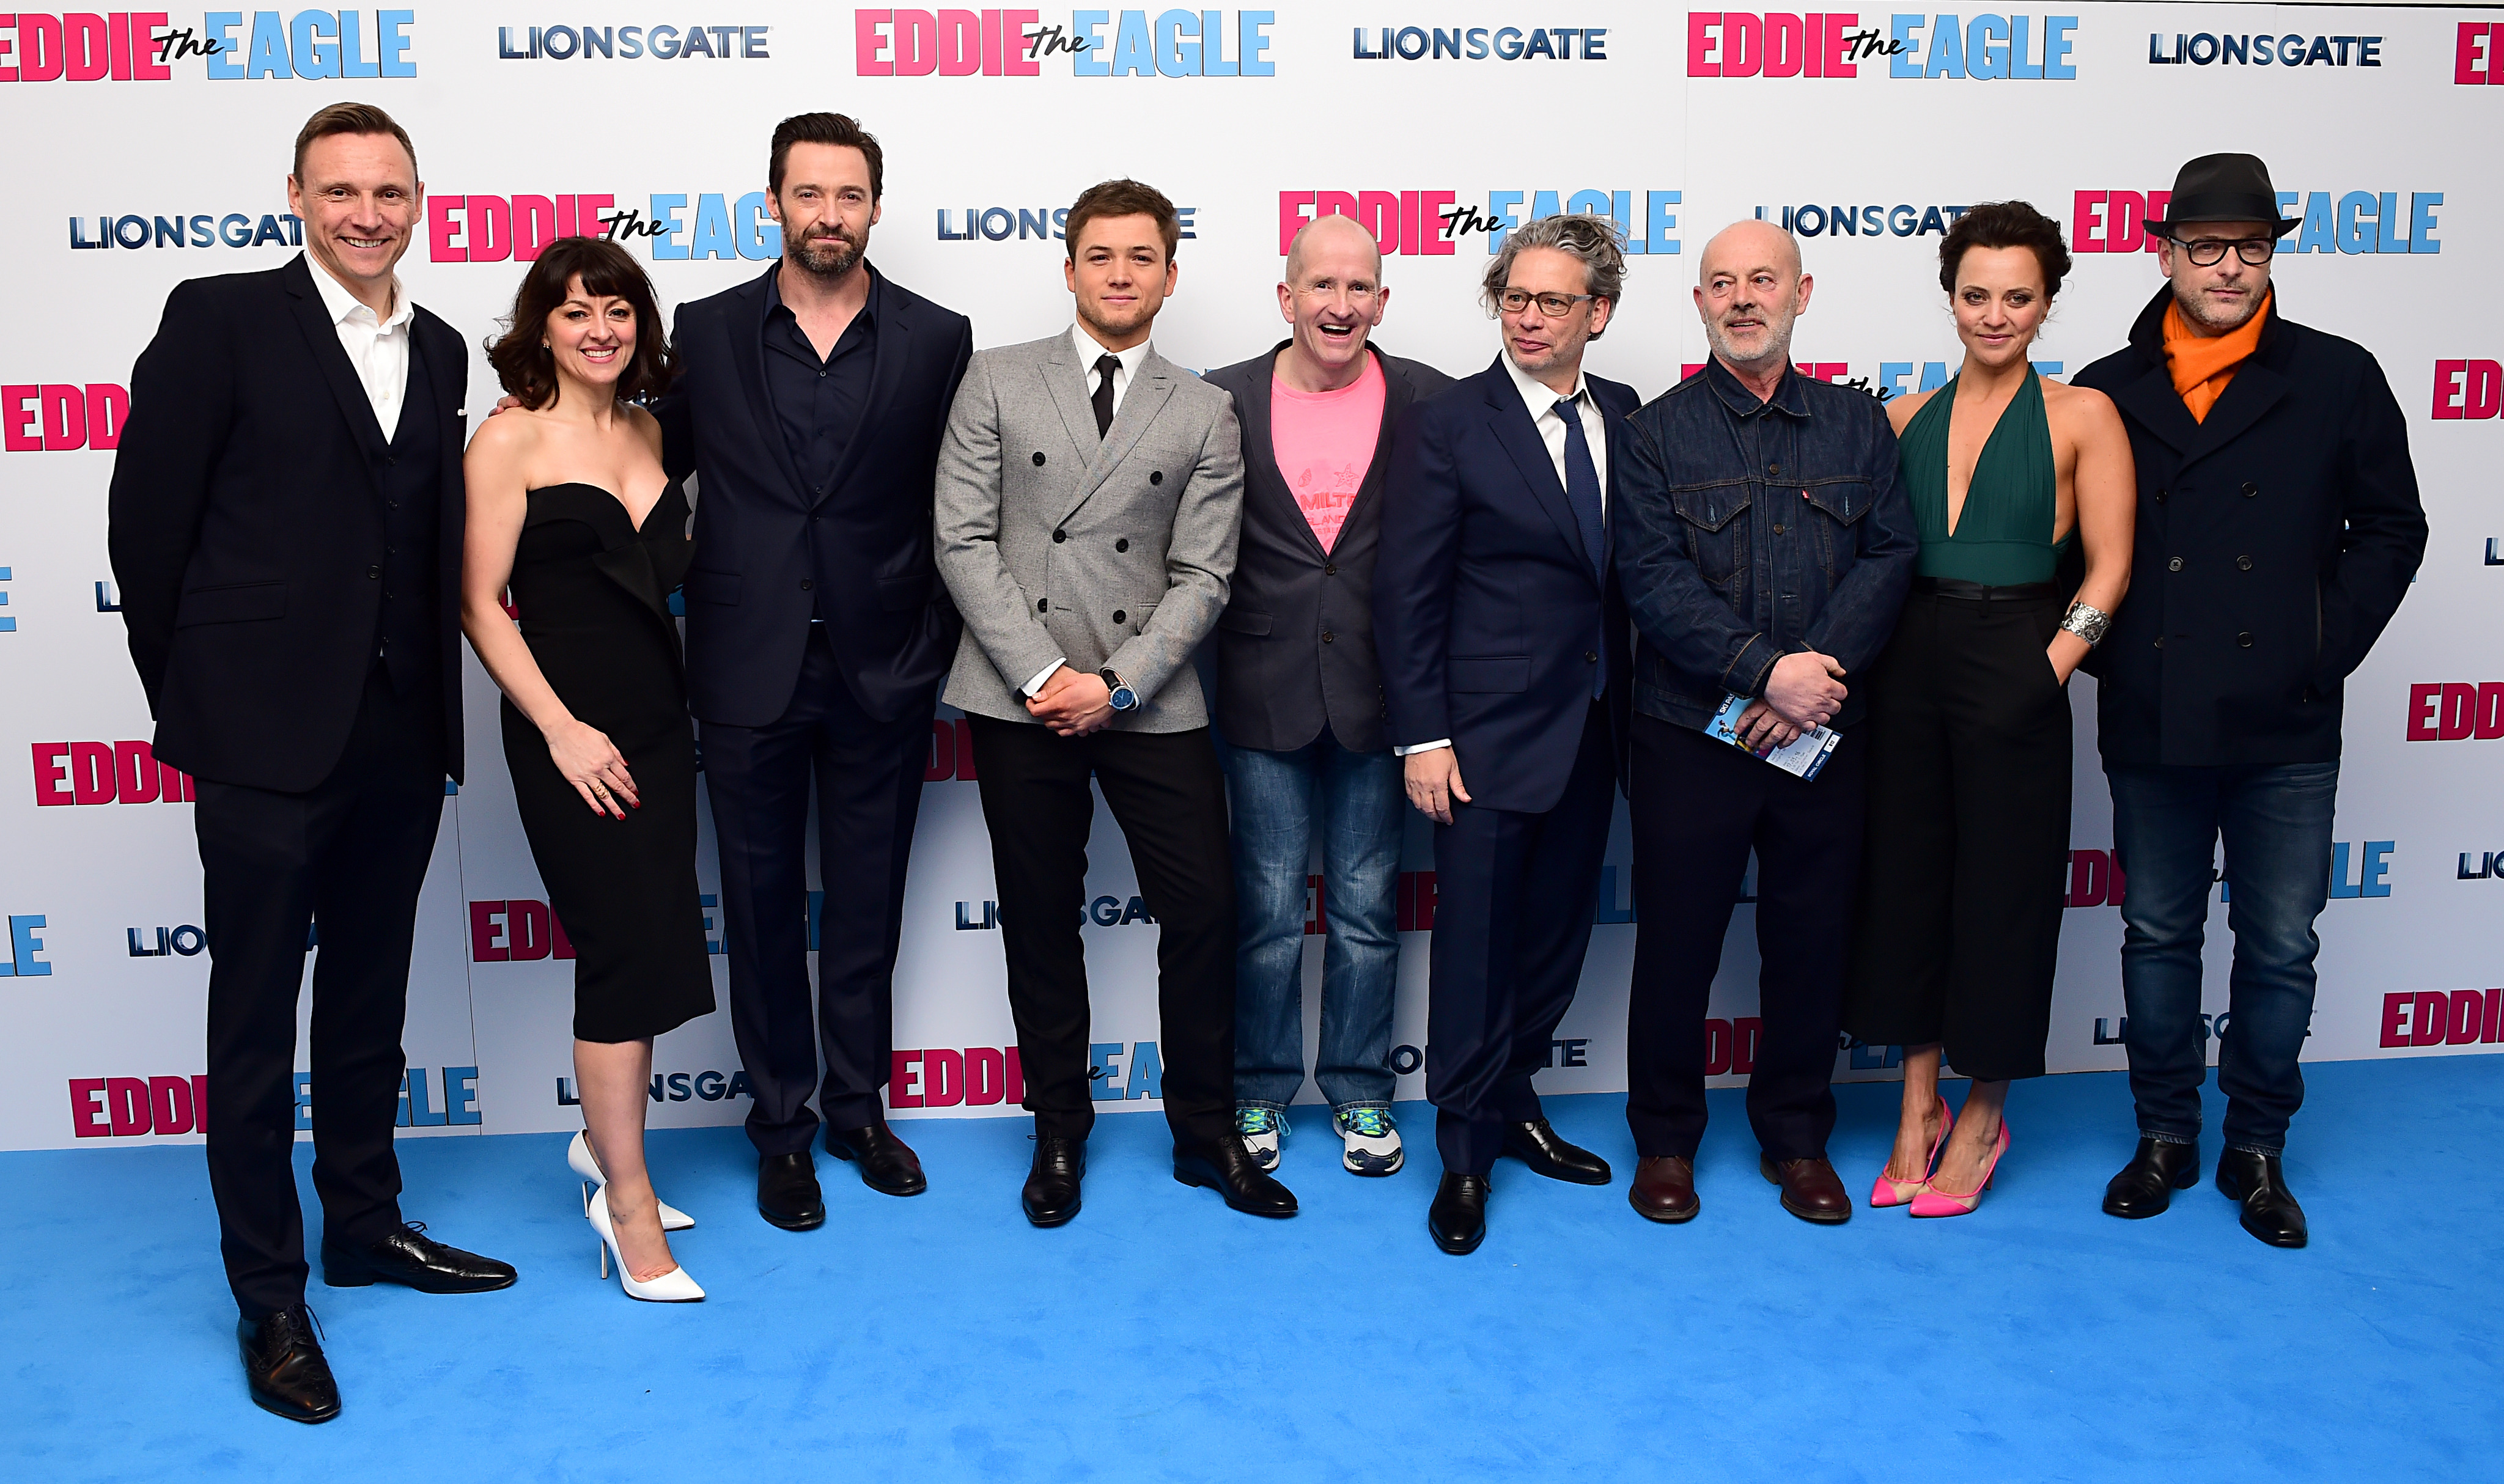 Eddie the Eagle European Premiere - London